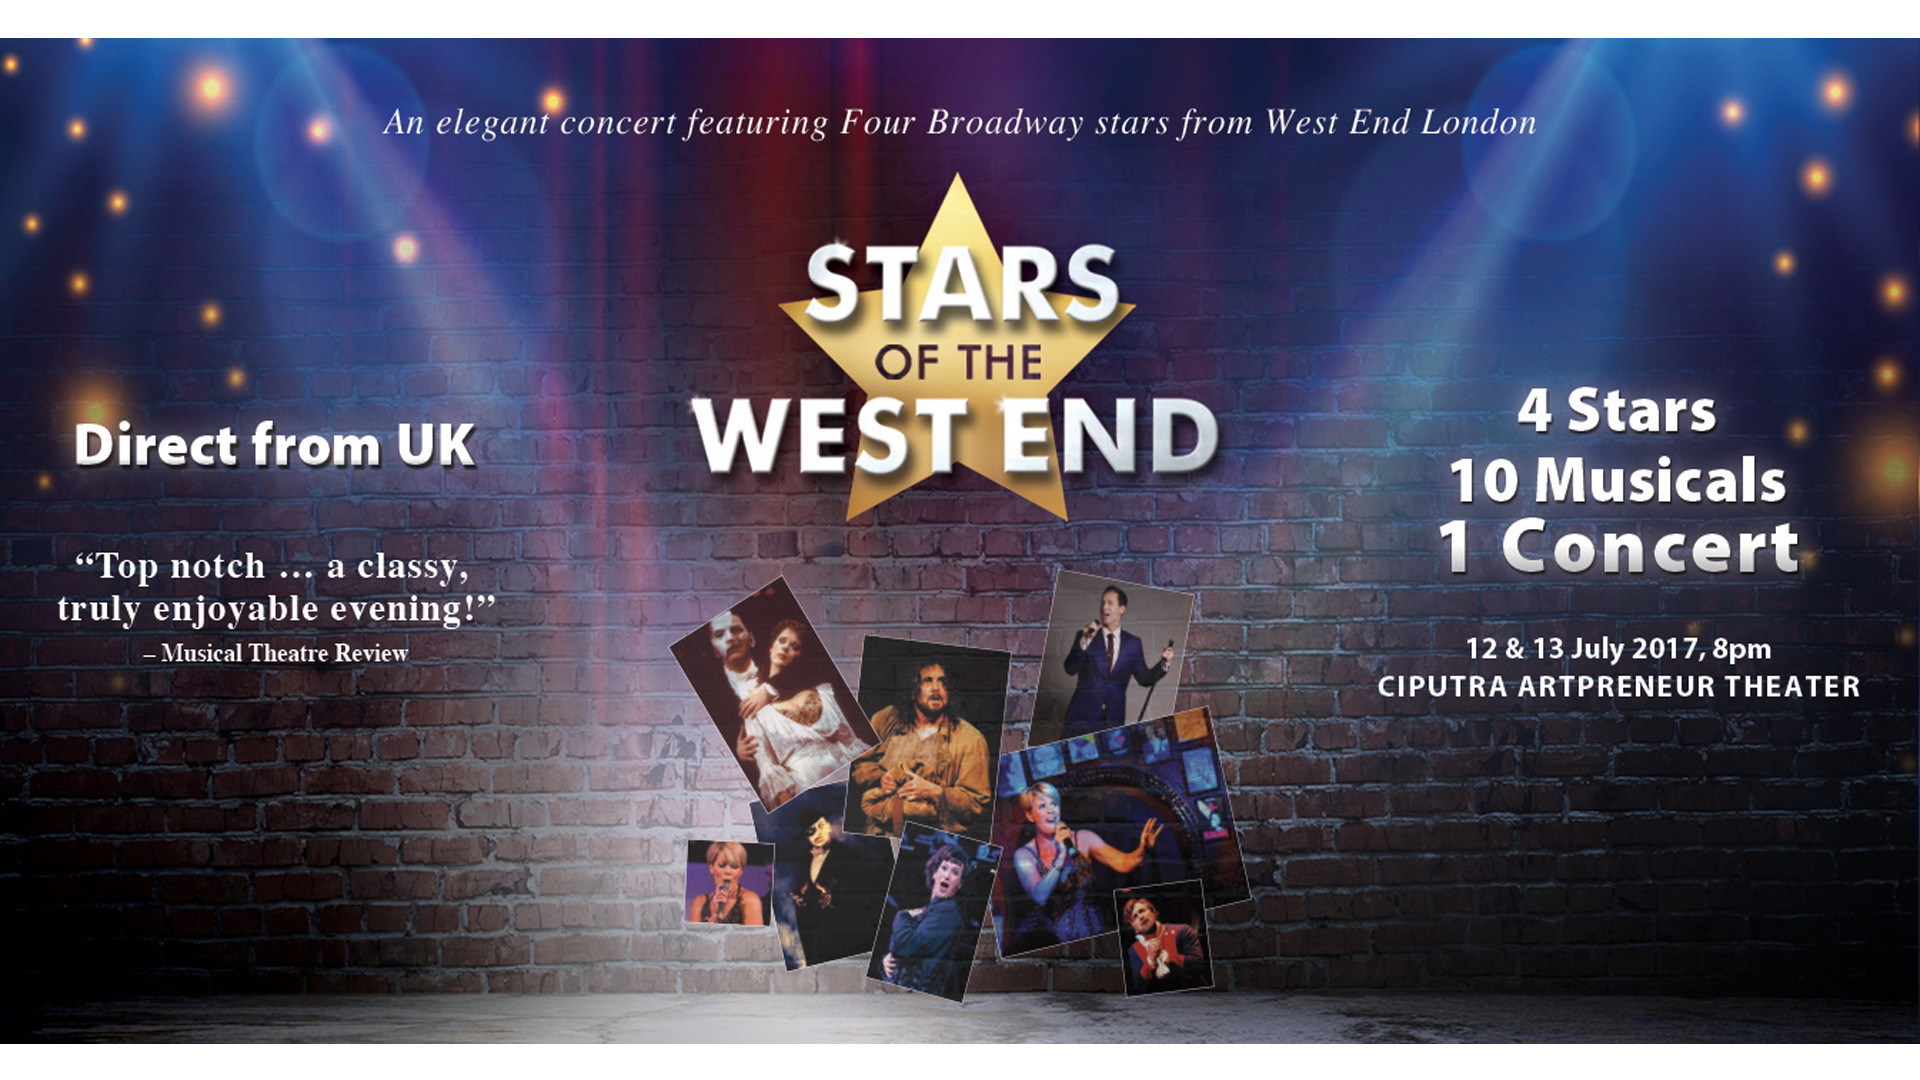 STARS OF THE WEST END